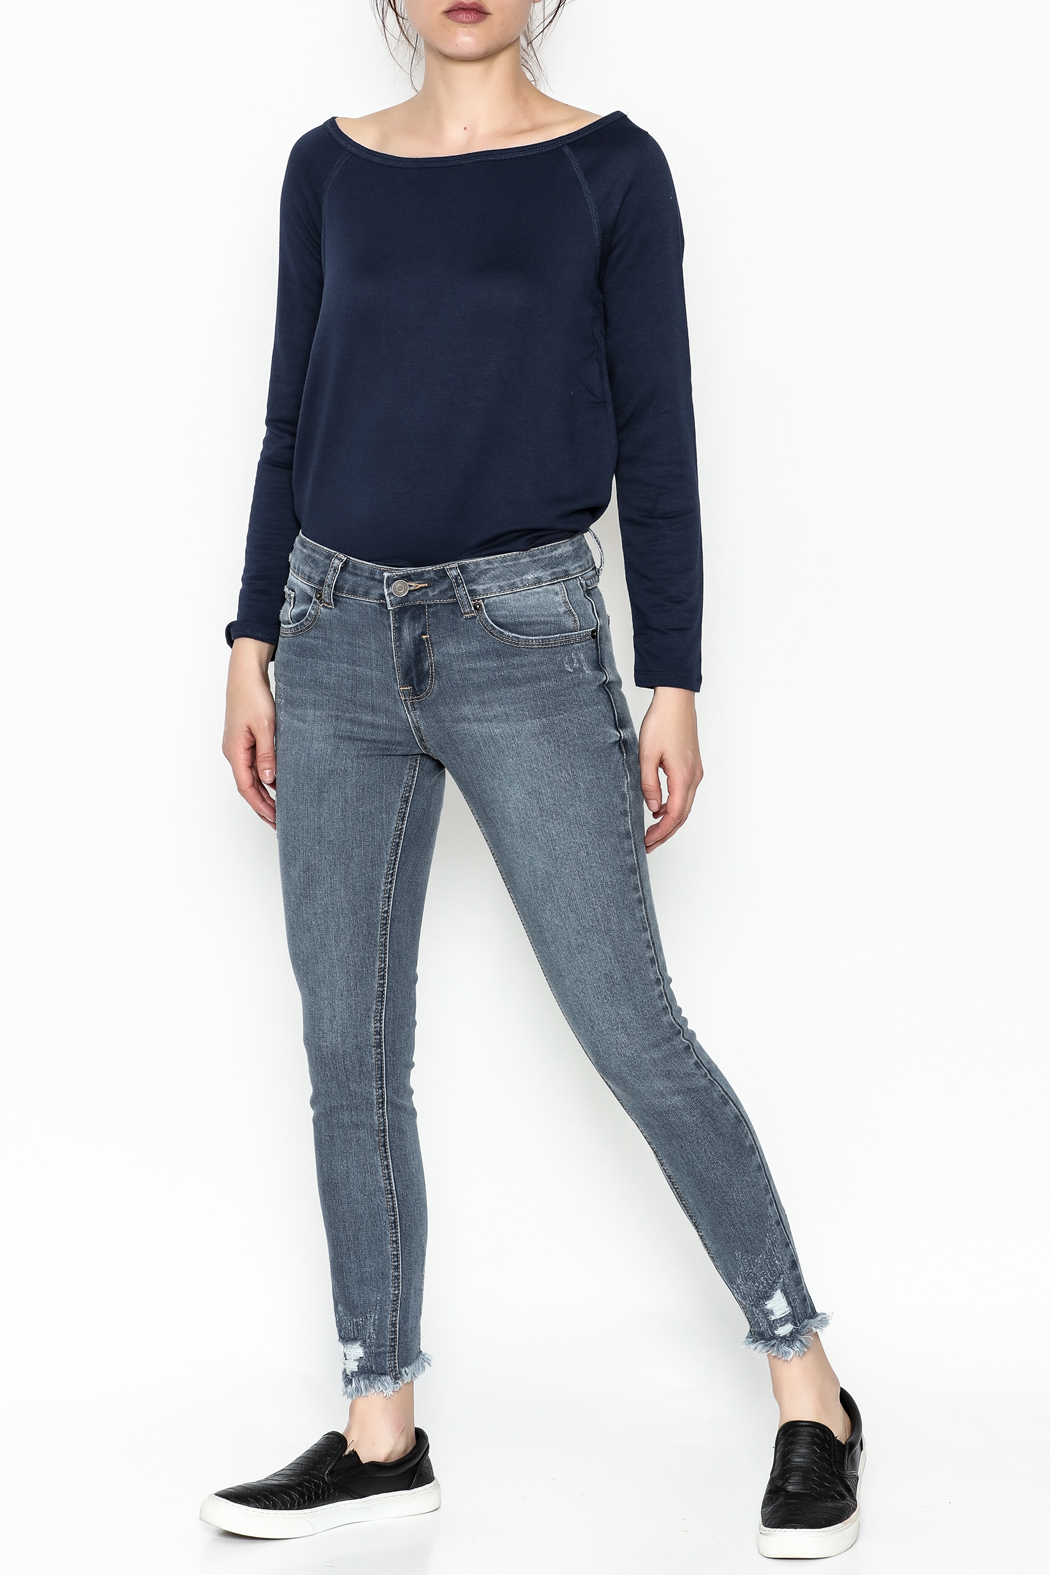 Current Air Jenee Distressed Jeans - Side Cropped Image